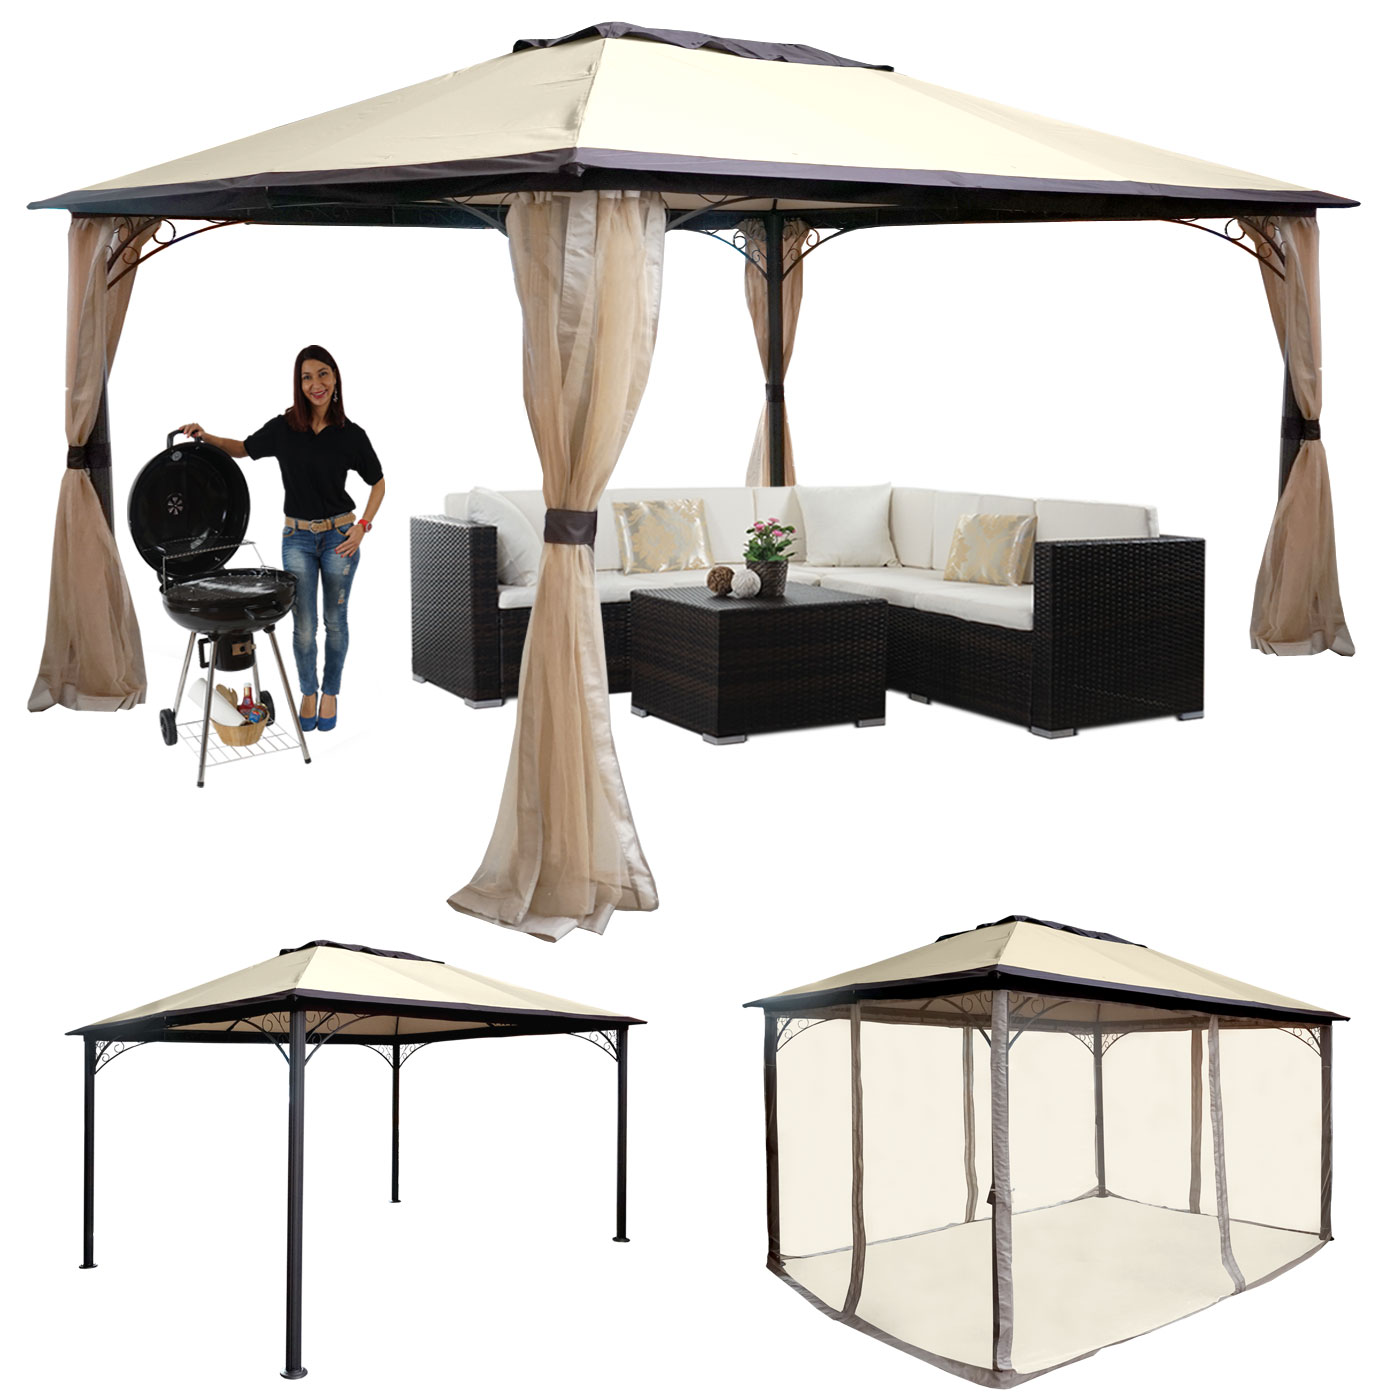 pergola mcw c42 garten pavillon stabiles 6cm gestell schiebedach 3 5x3 5m creme. Black Bedroom Furniture Sets. Home Design Ideas